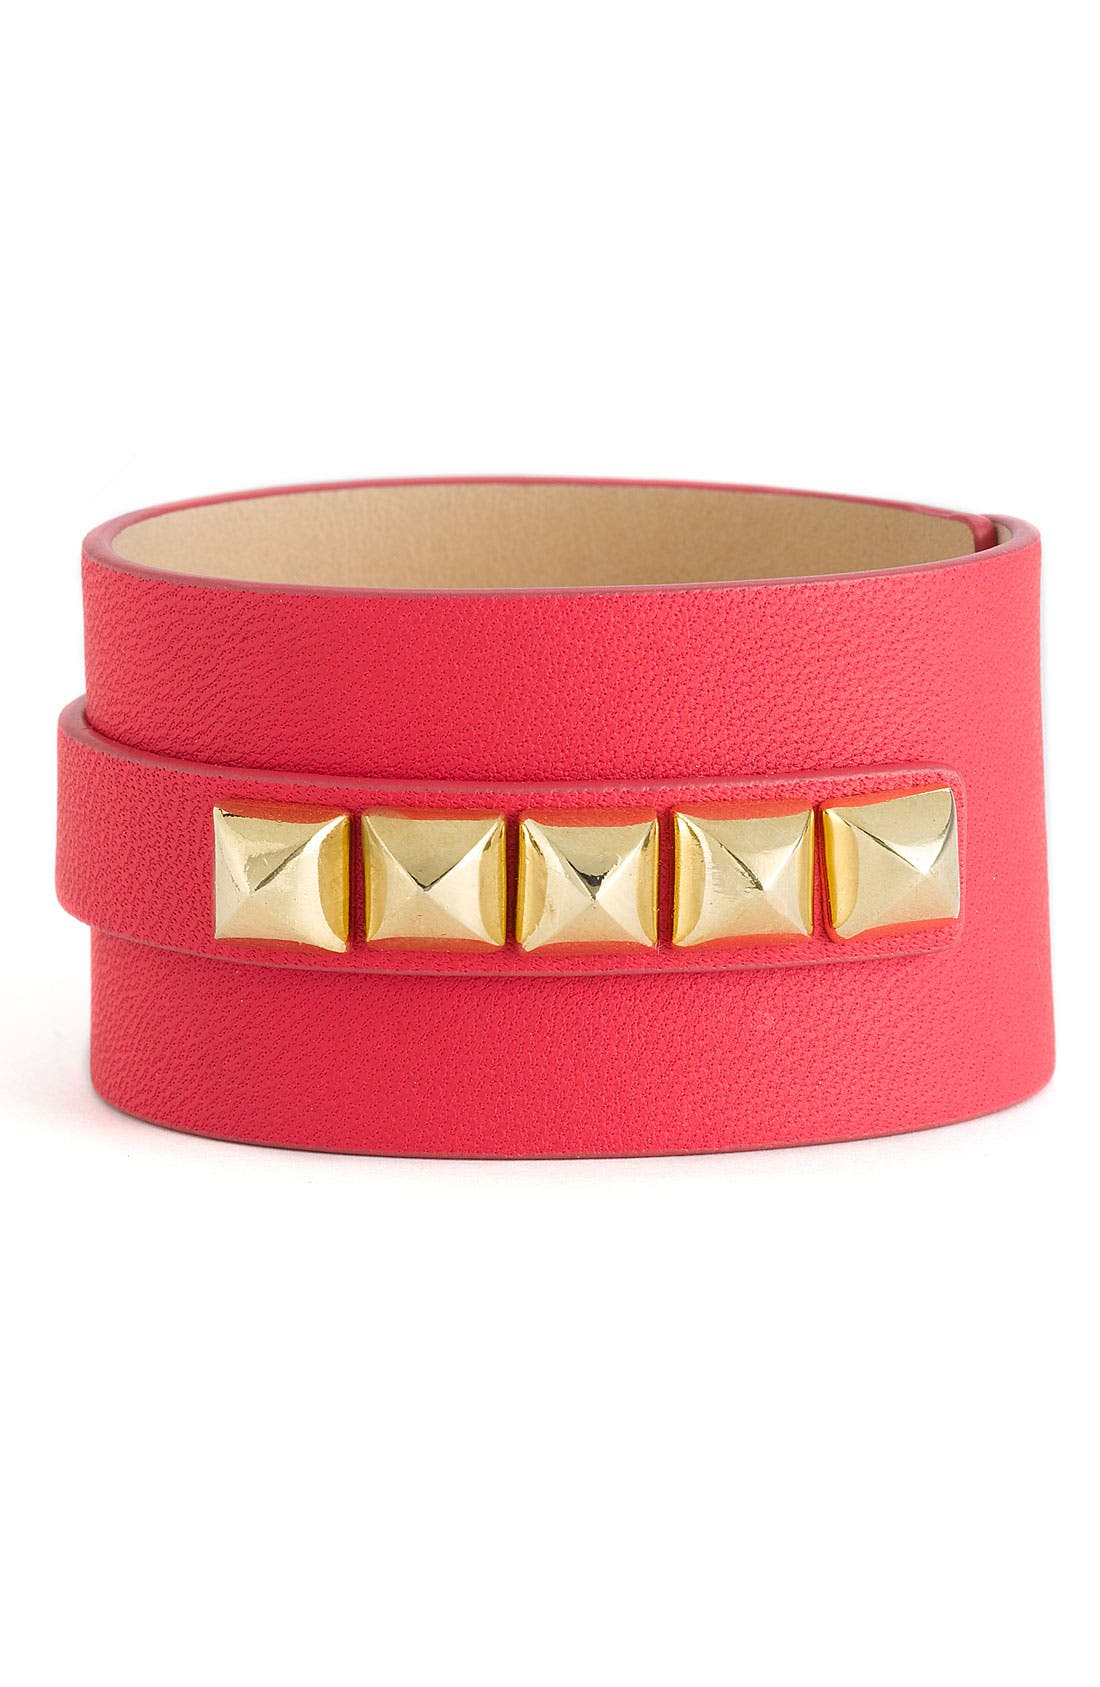 Main Image - Juicy Couture Leather Charm Cuff